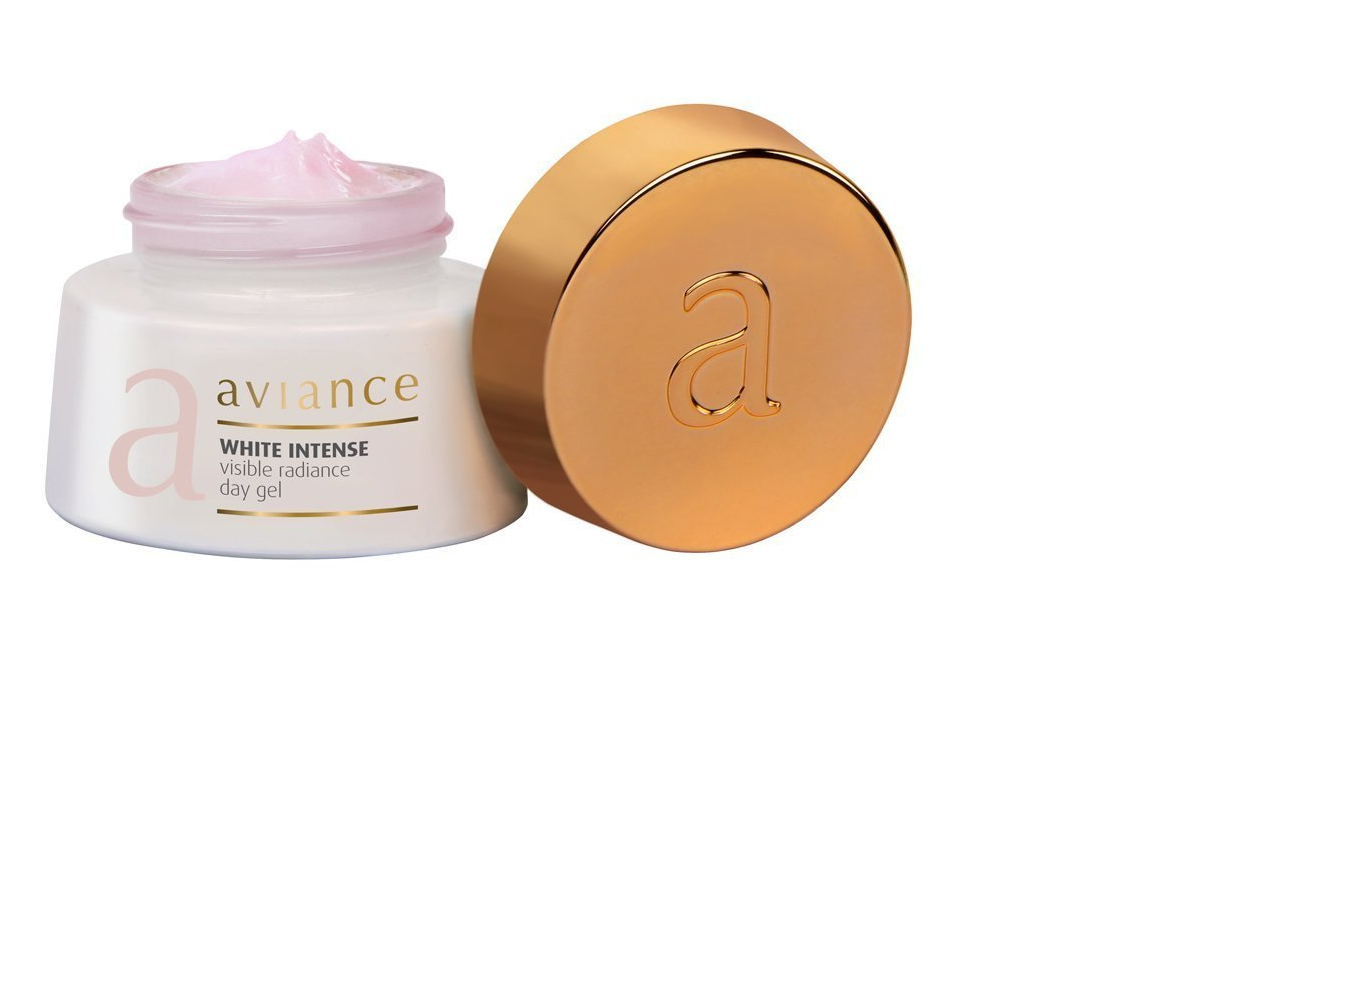 Aviance White Intense Visible Radiance Day Gel,